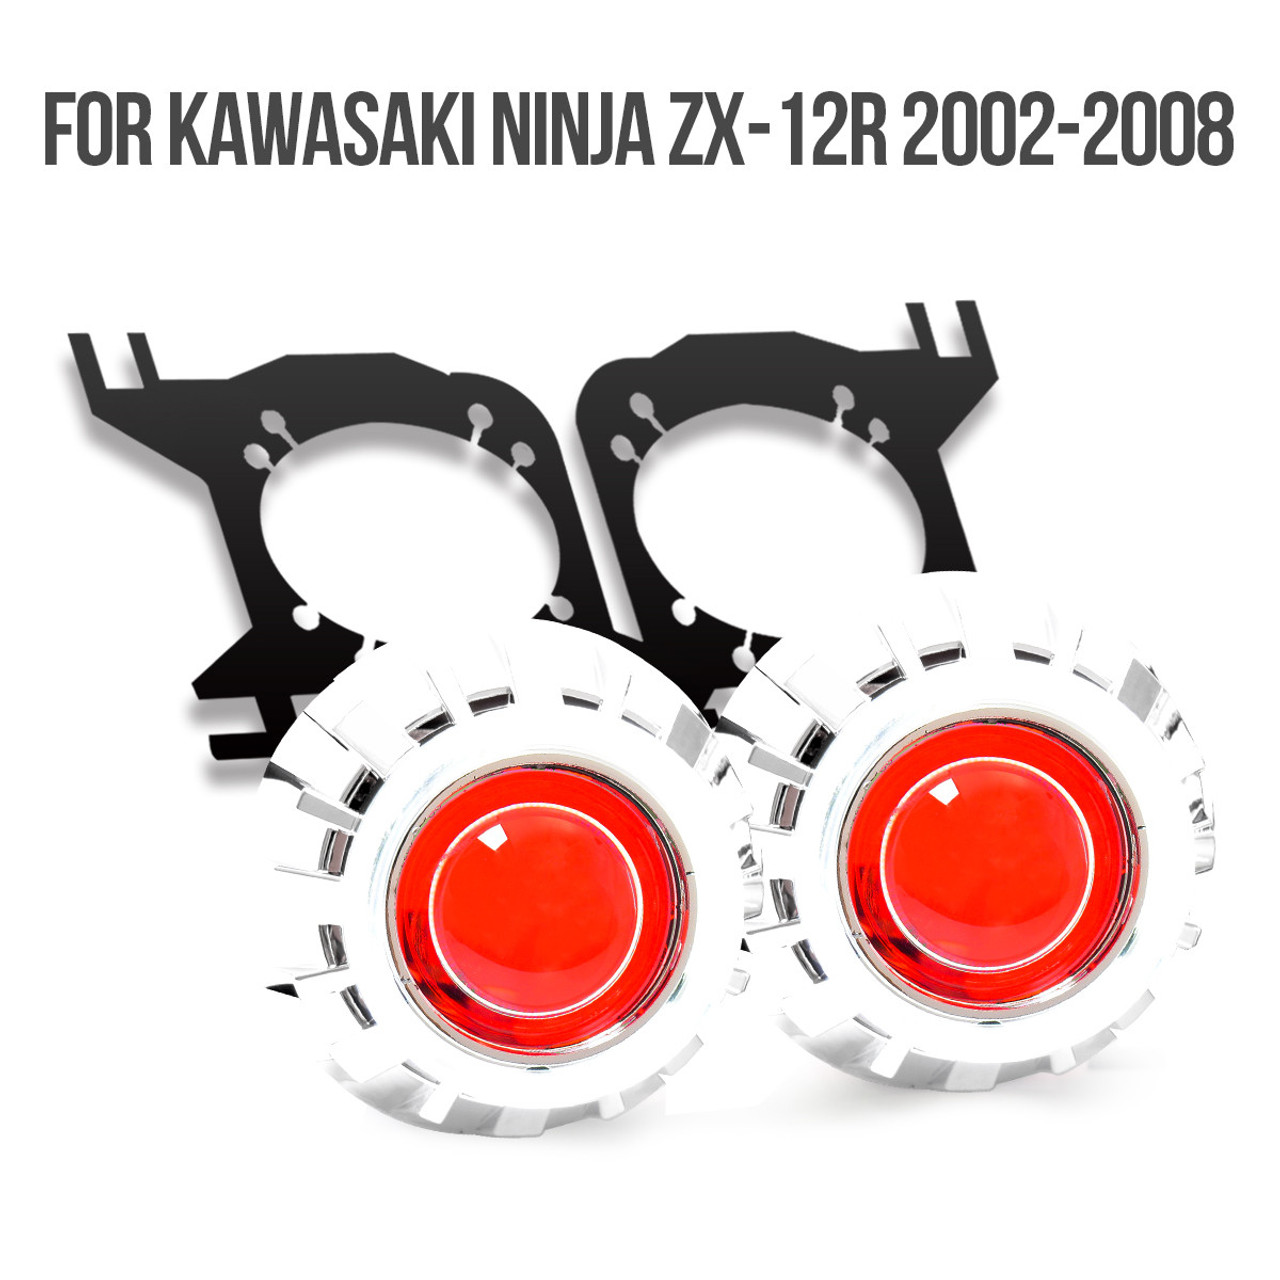 small resolution of 2002 2003 2004 2005 2006 2007 2008 kawasaki ninja zx12r projector kit